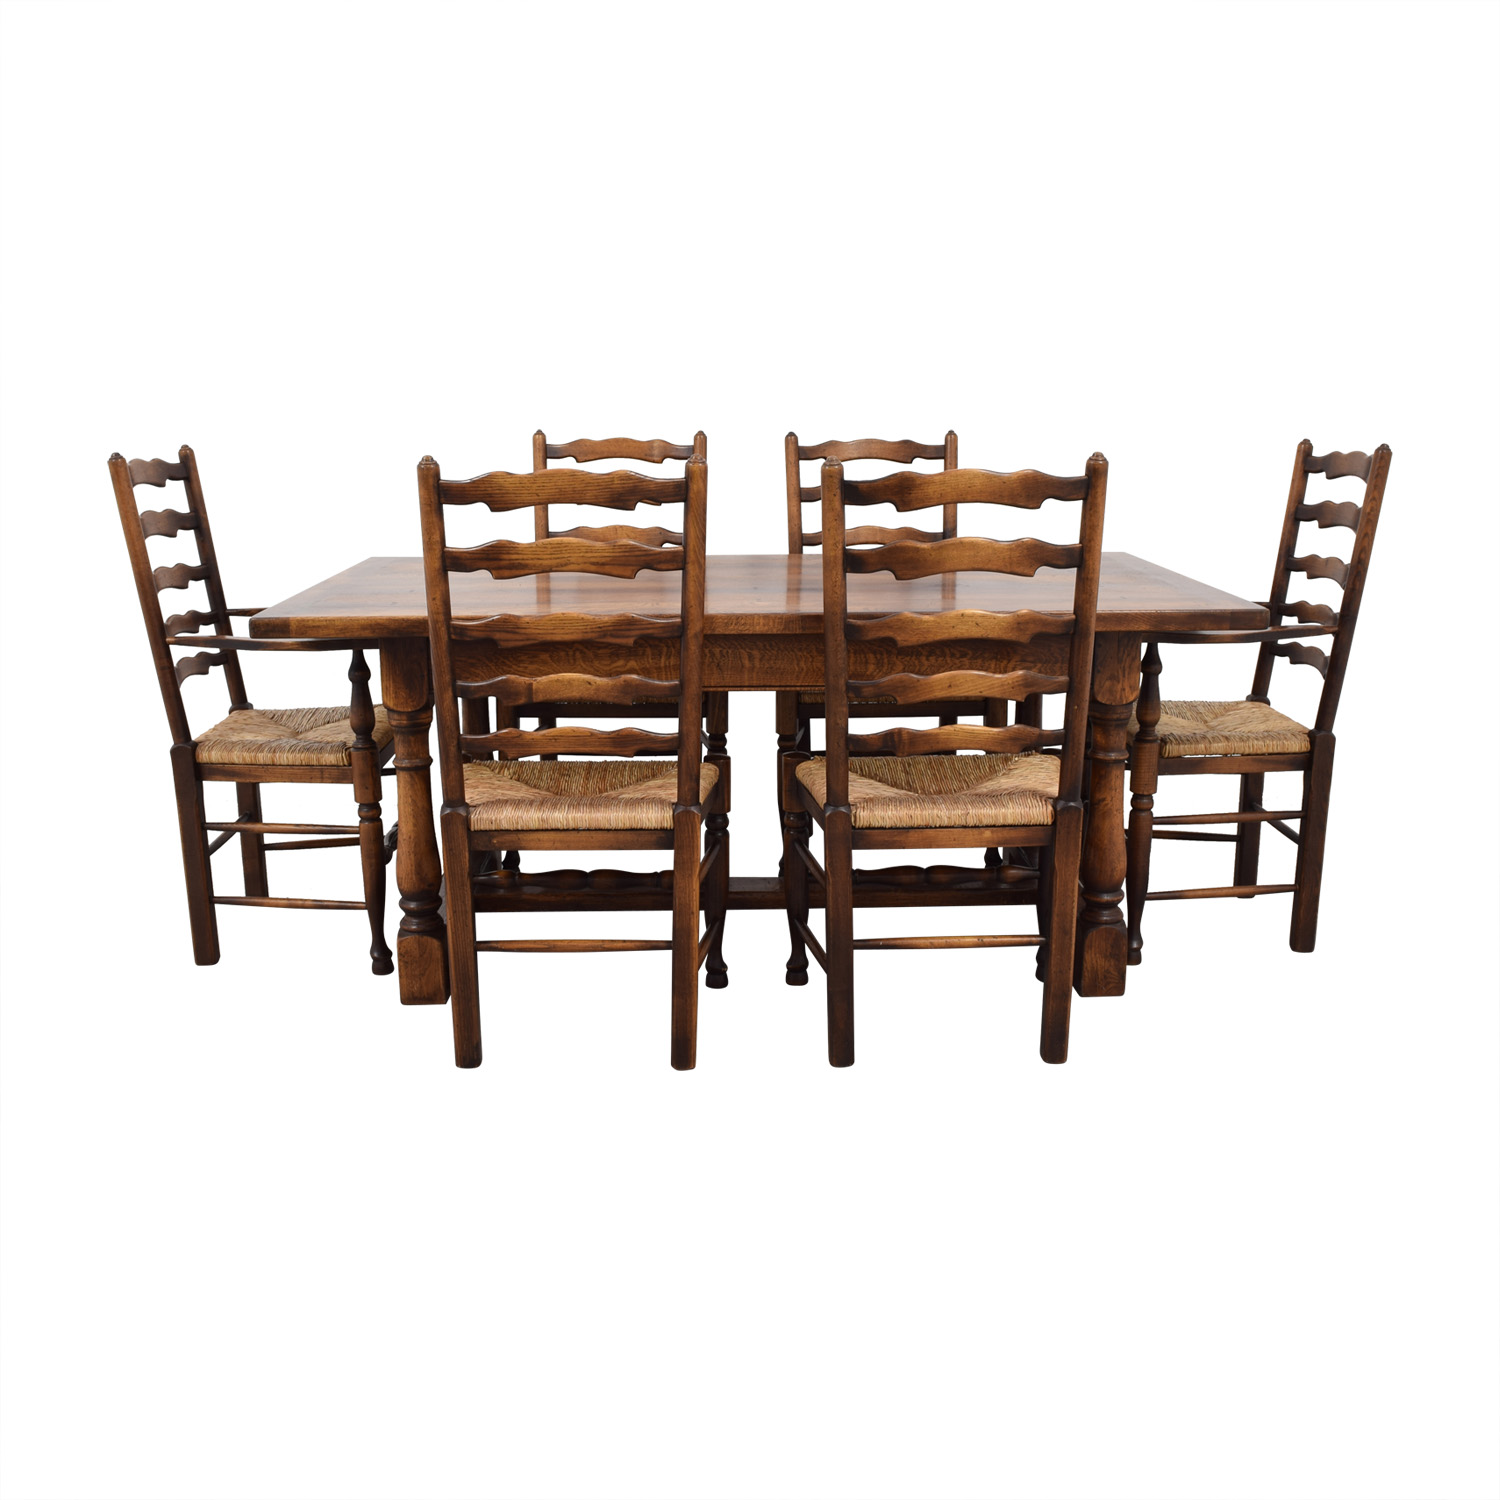 Fauld Fauld Refectory Wood Dining Set for sale